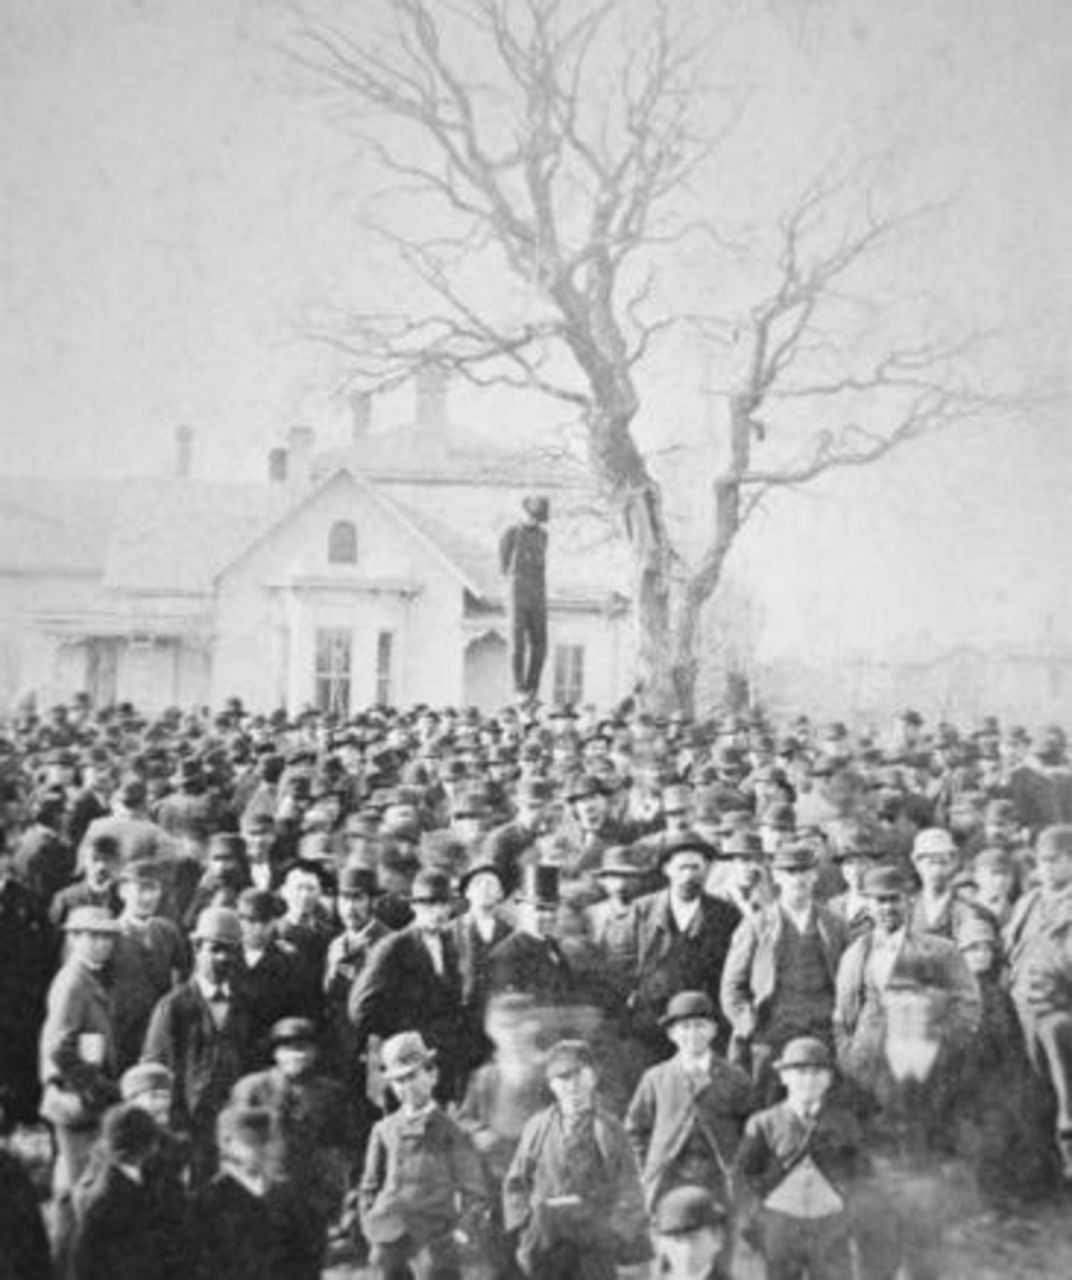 Frank McManus, lynched on accusation of rape in Minnesota, 1882